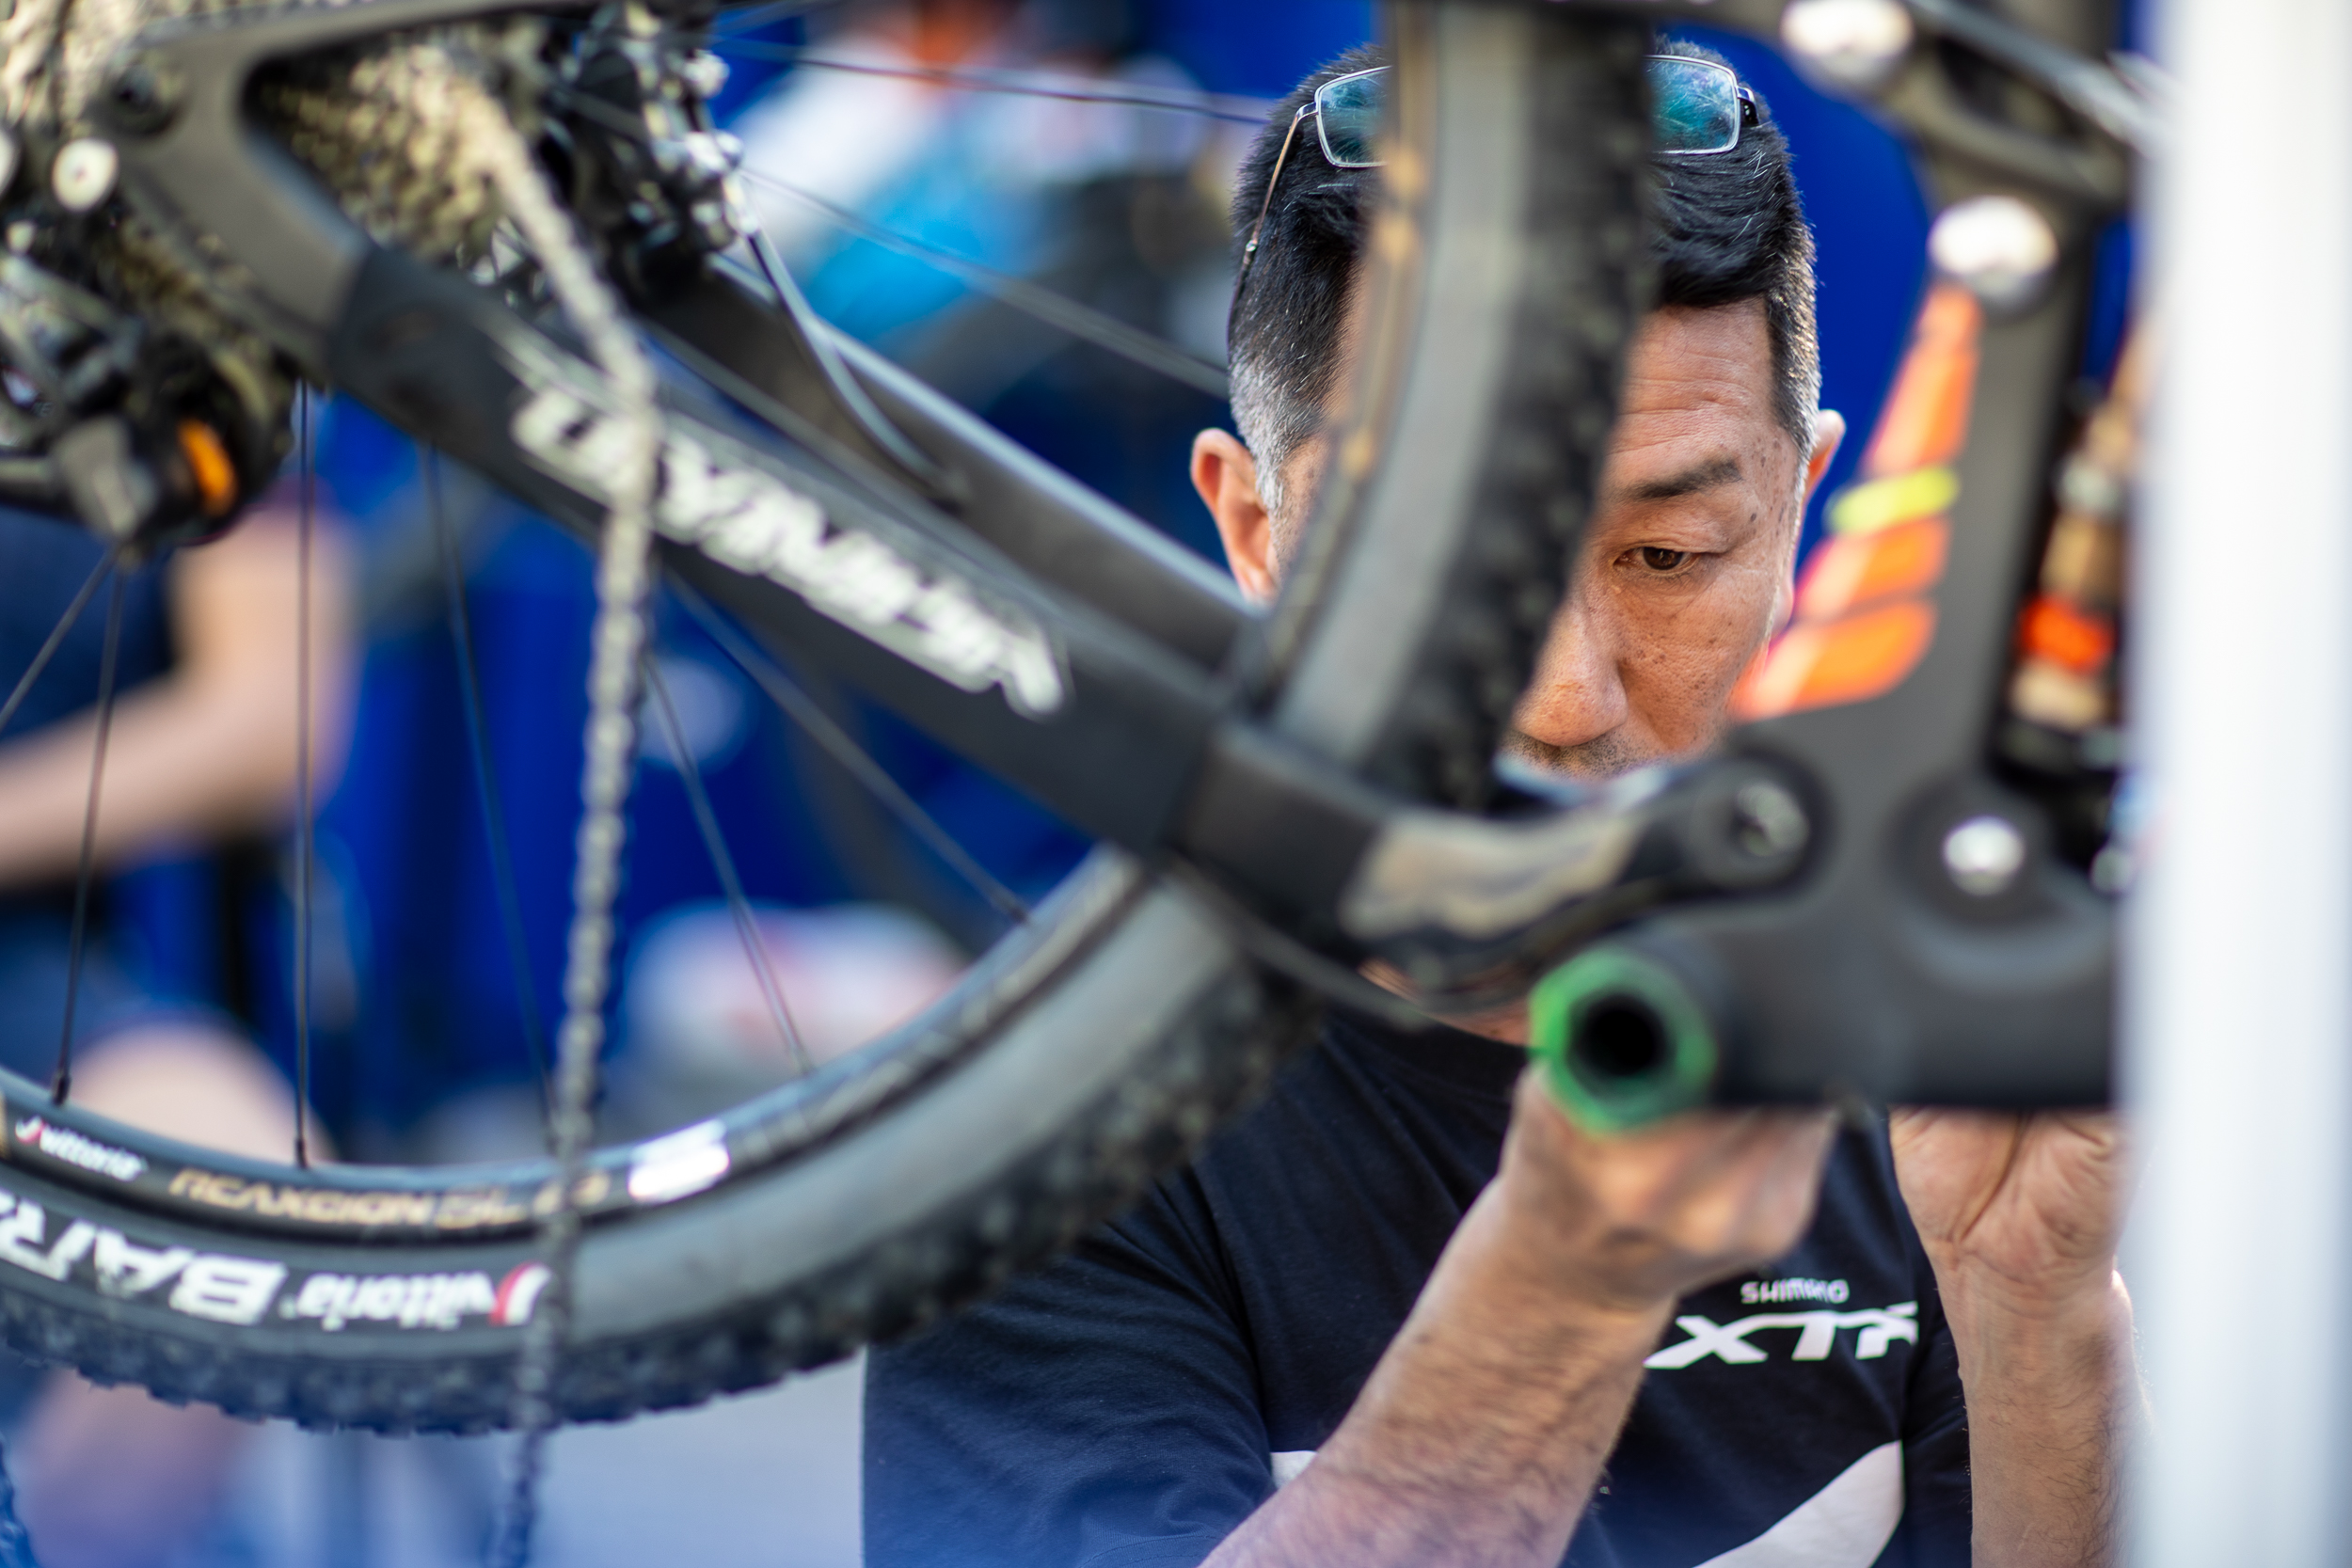 Shimano support in Nals Race - Ph: Michele Mondini